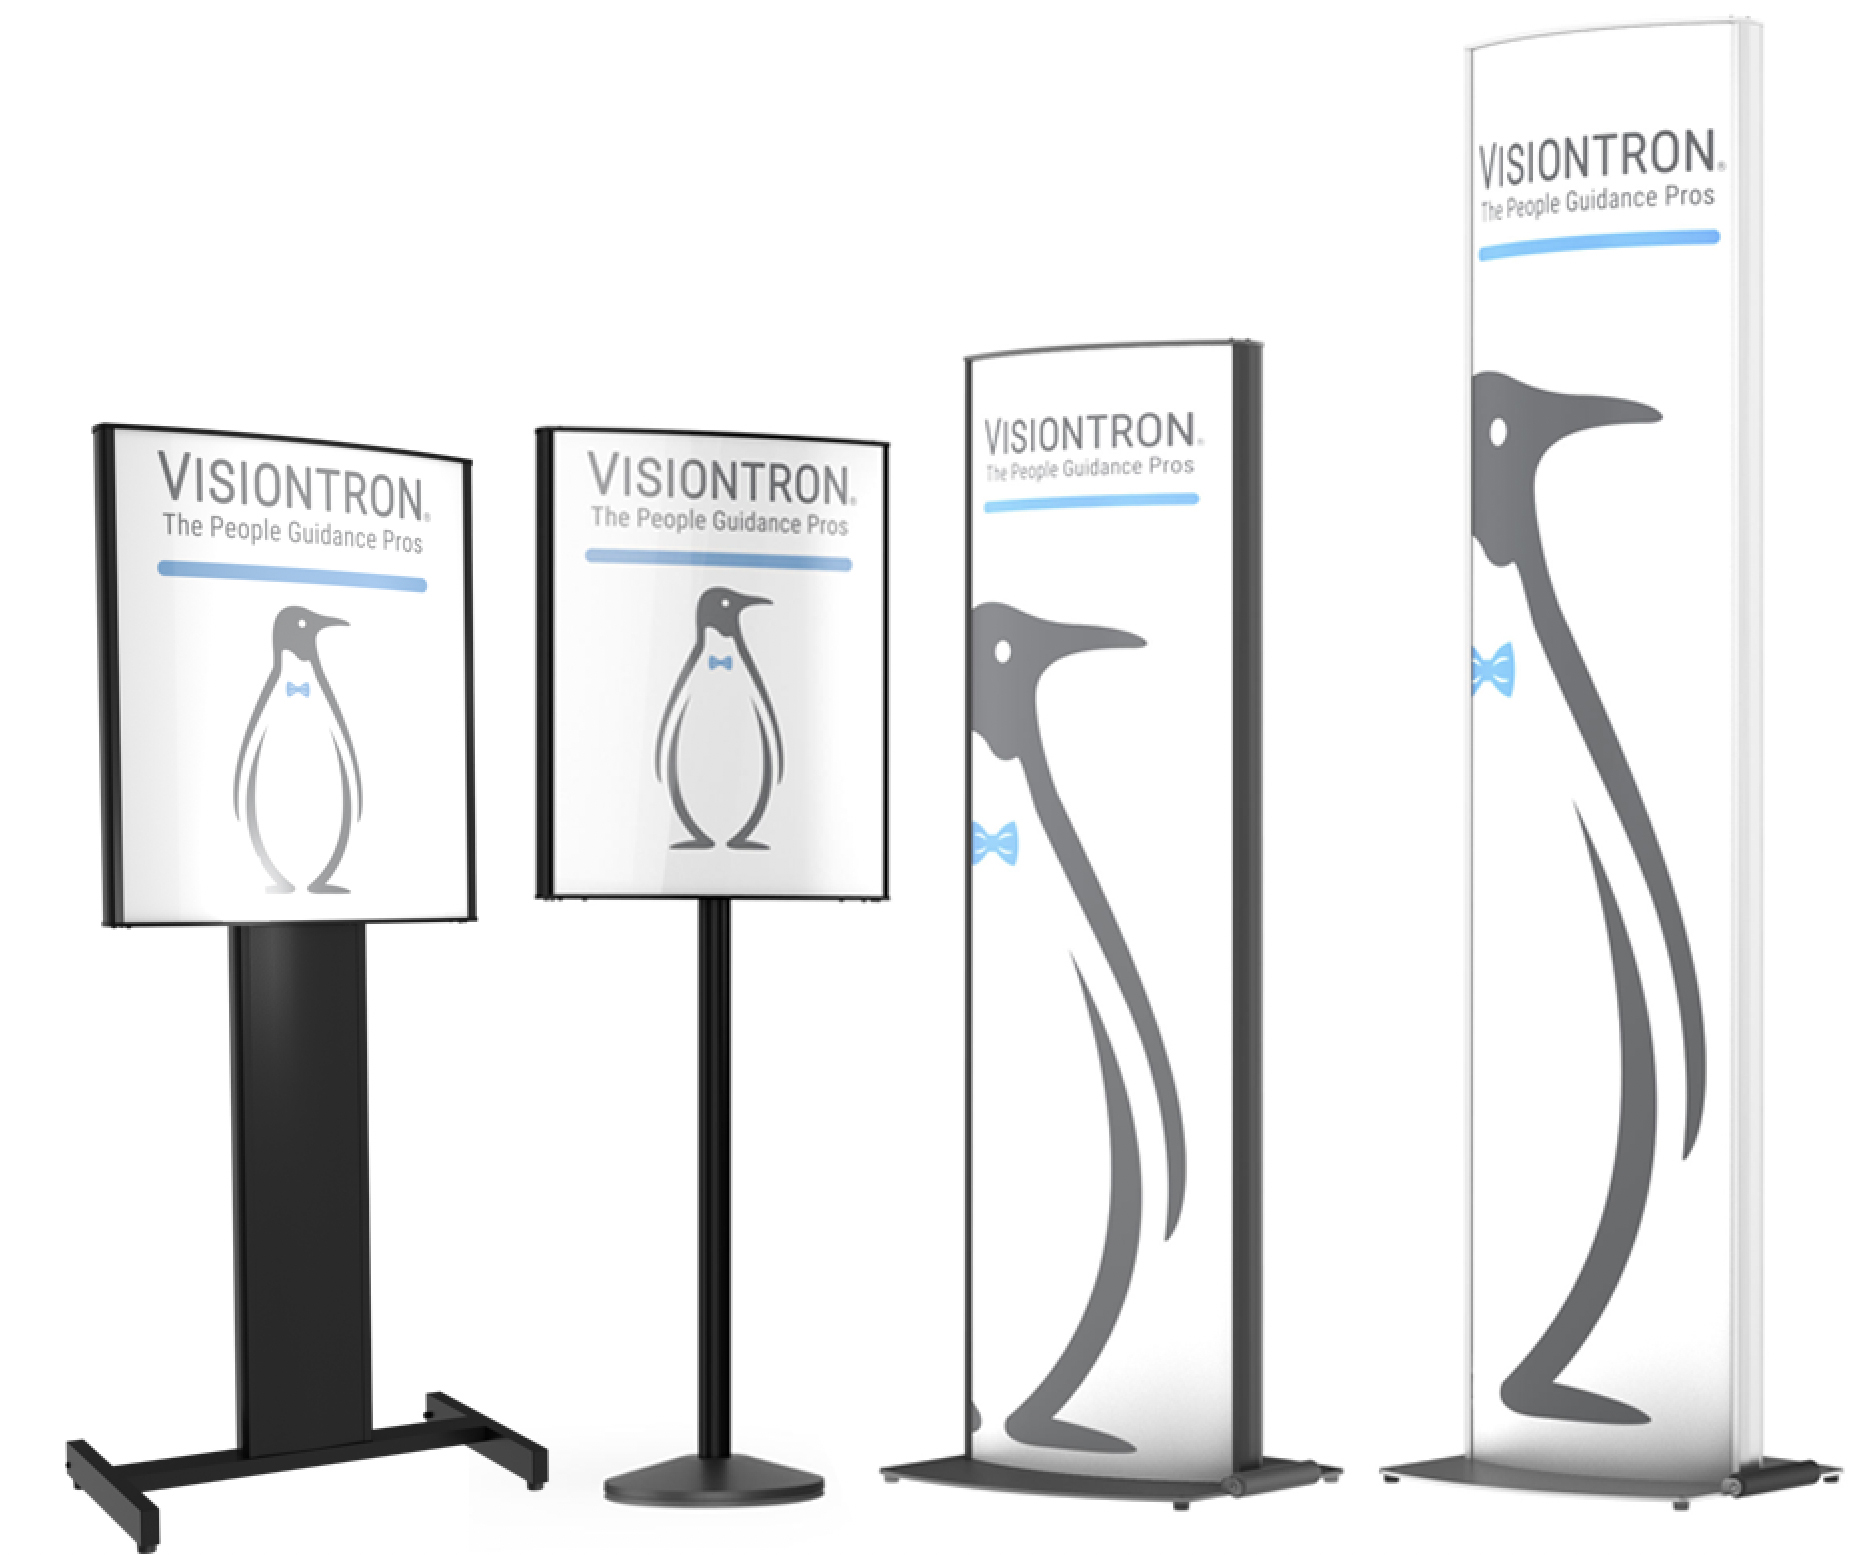 Visiontron Introduces VERSA-STAND — A New Line of Sign Stands for Airports, Stadiums, Casinos, Banks, Restaurants and Hotels